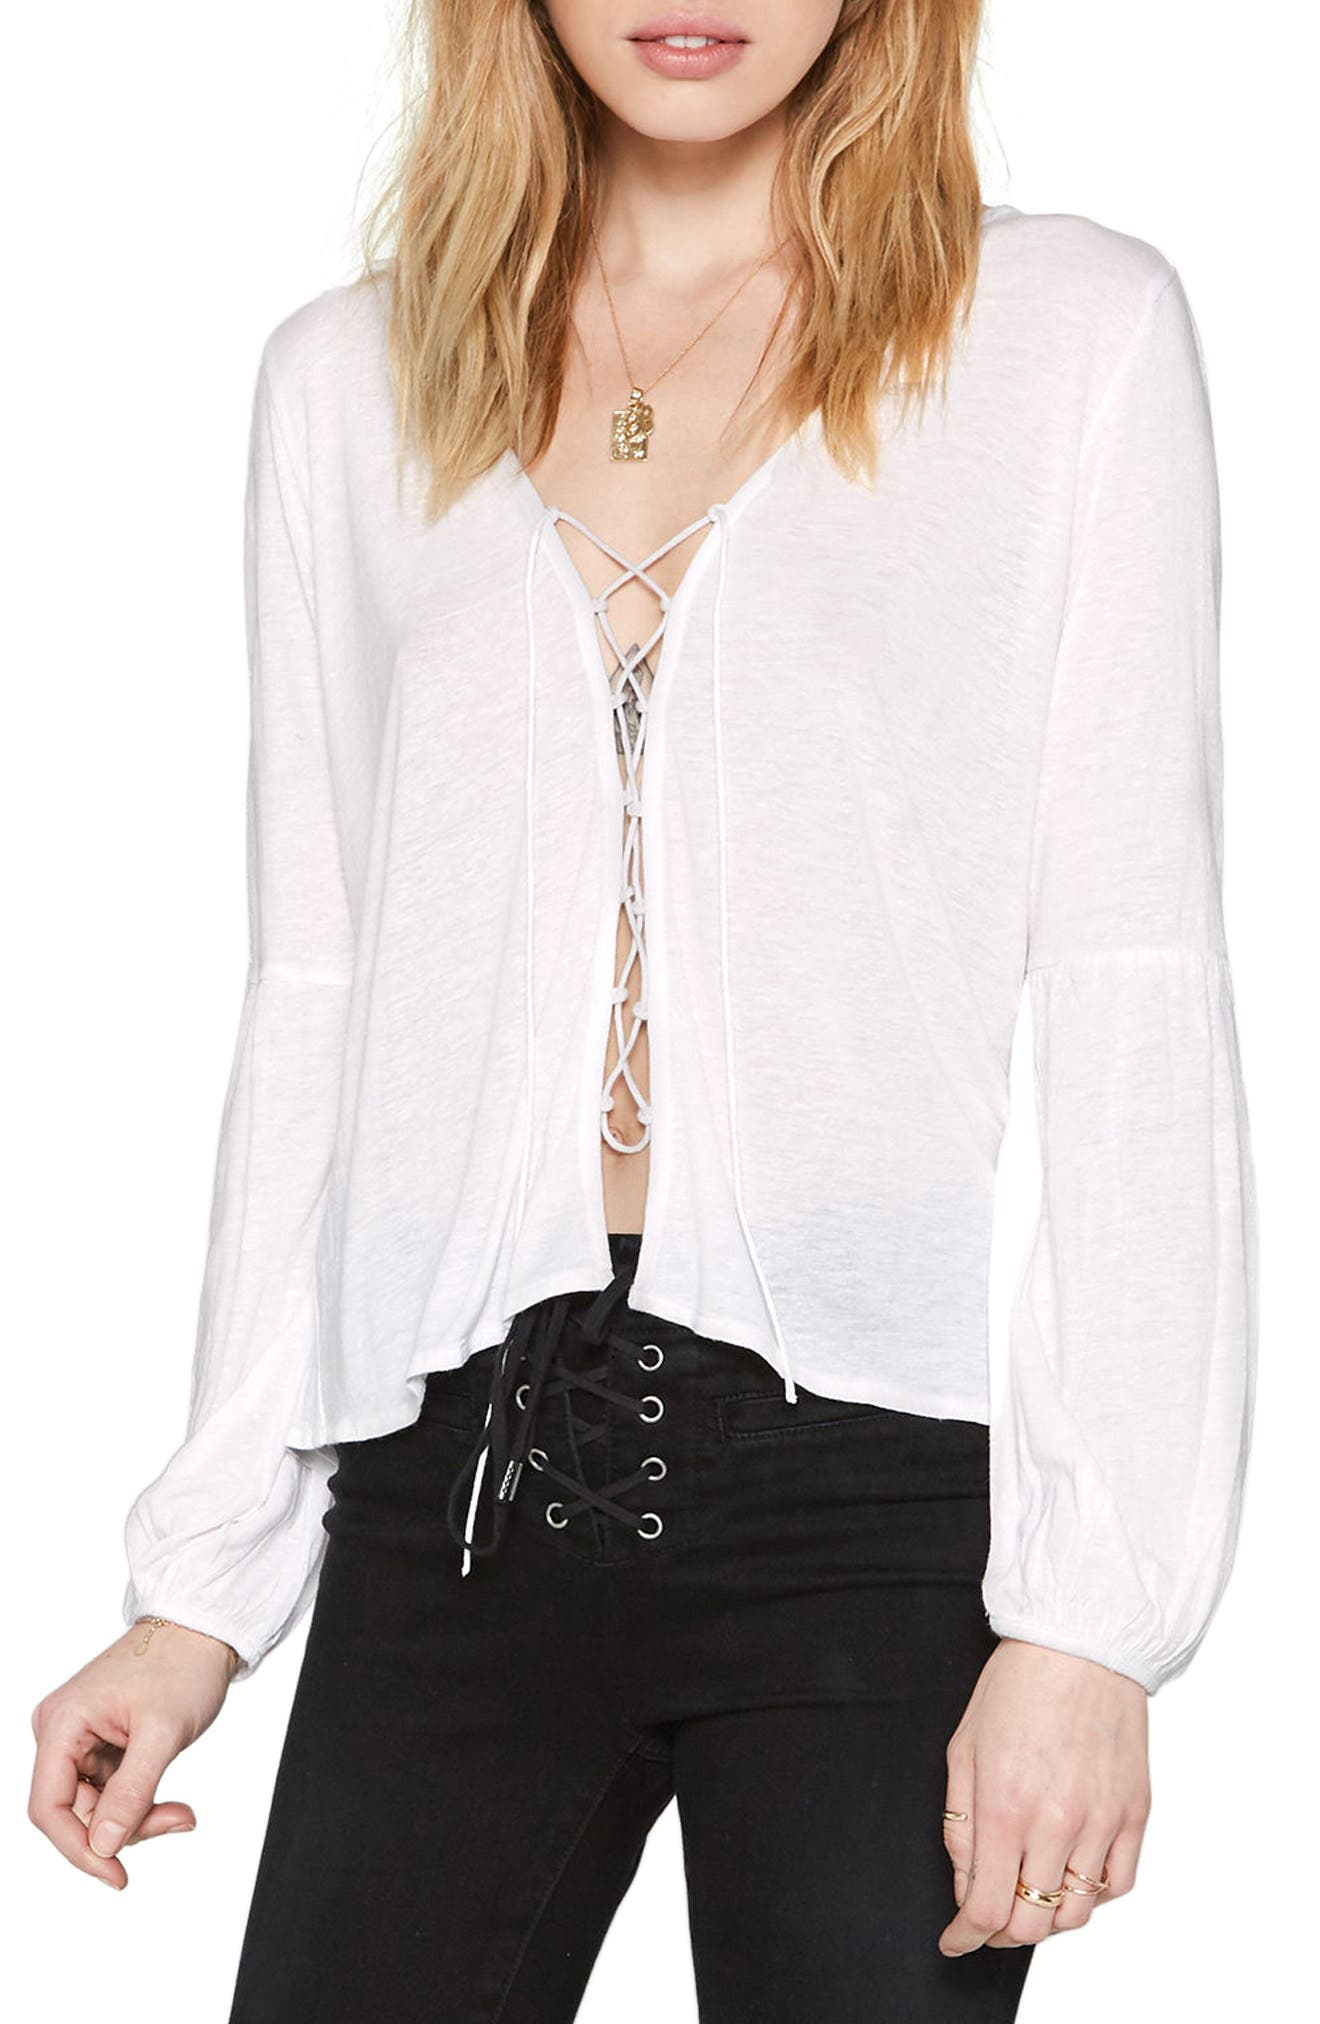 Spencer Lace-Up Top,                         Main,                         color, White